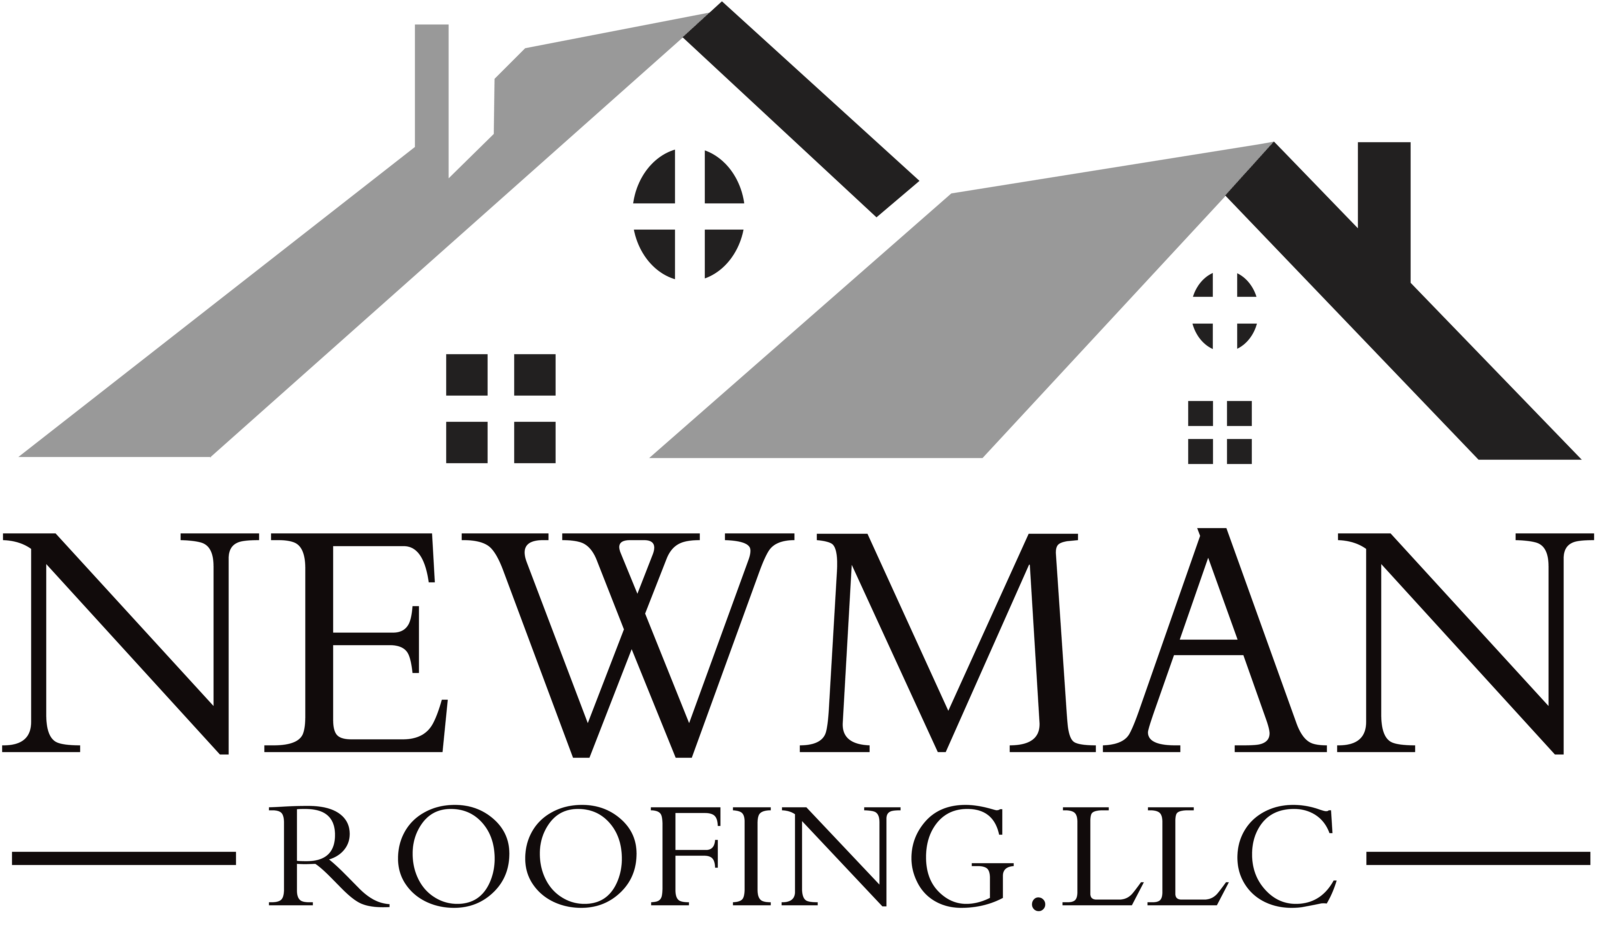 Roof clipart roof leak. A homeowner s guide